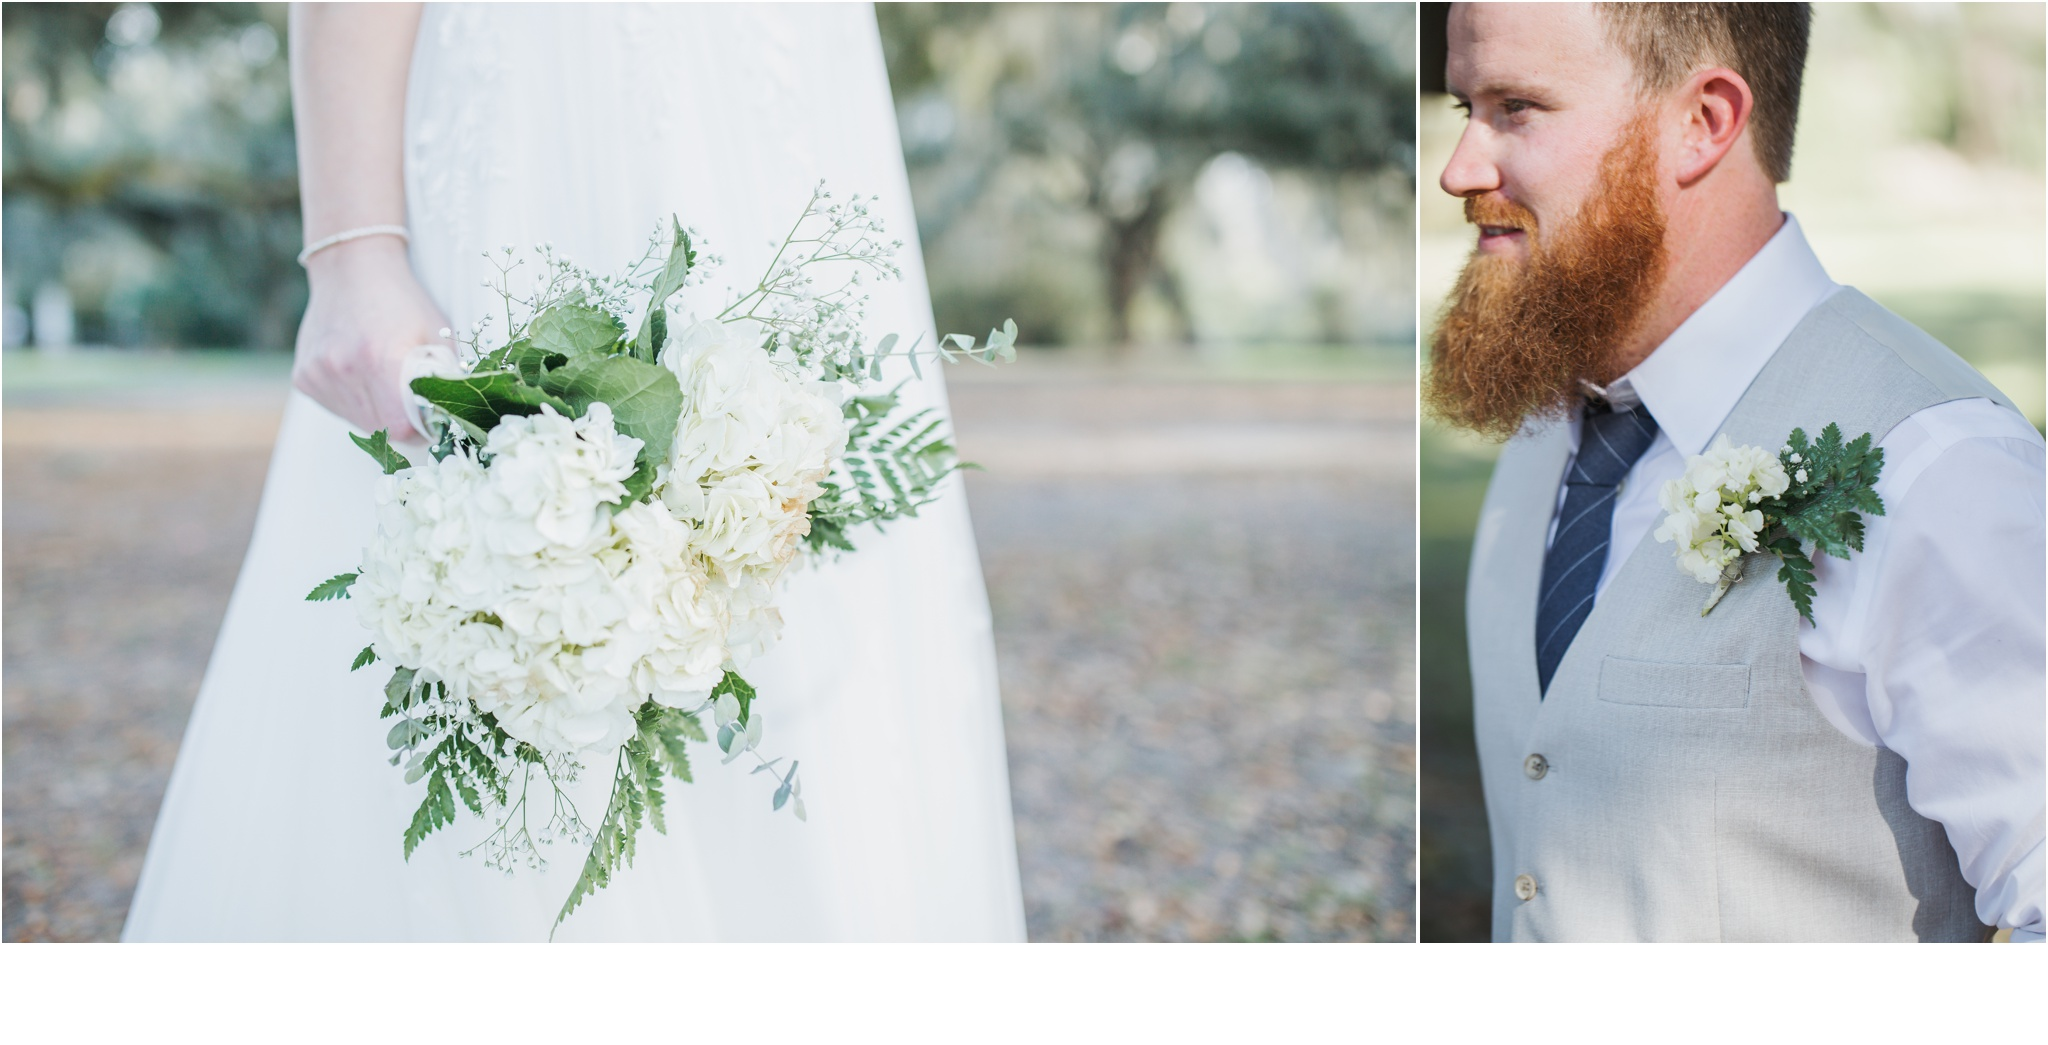 Rainey_Gregg_Photography_St._Simons_Island_Georgia_California_Wedding_Portrait_Photography_1720.jpg